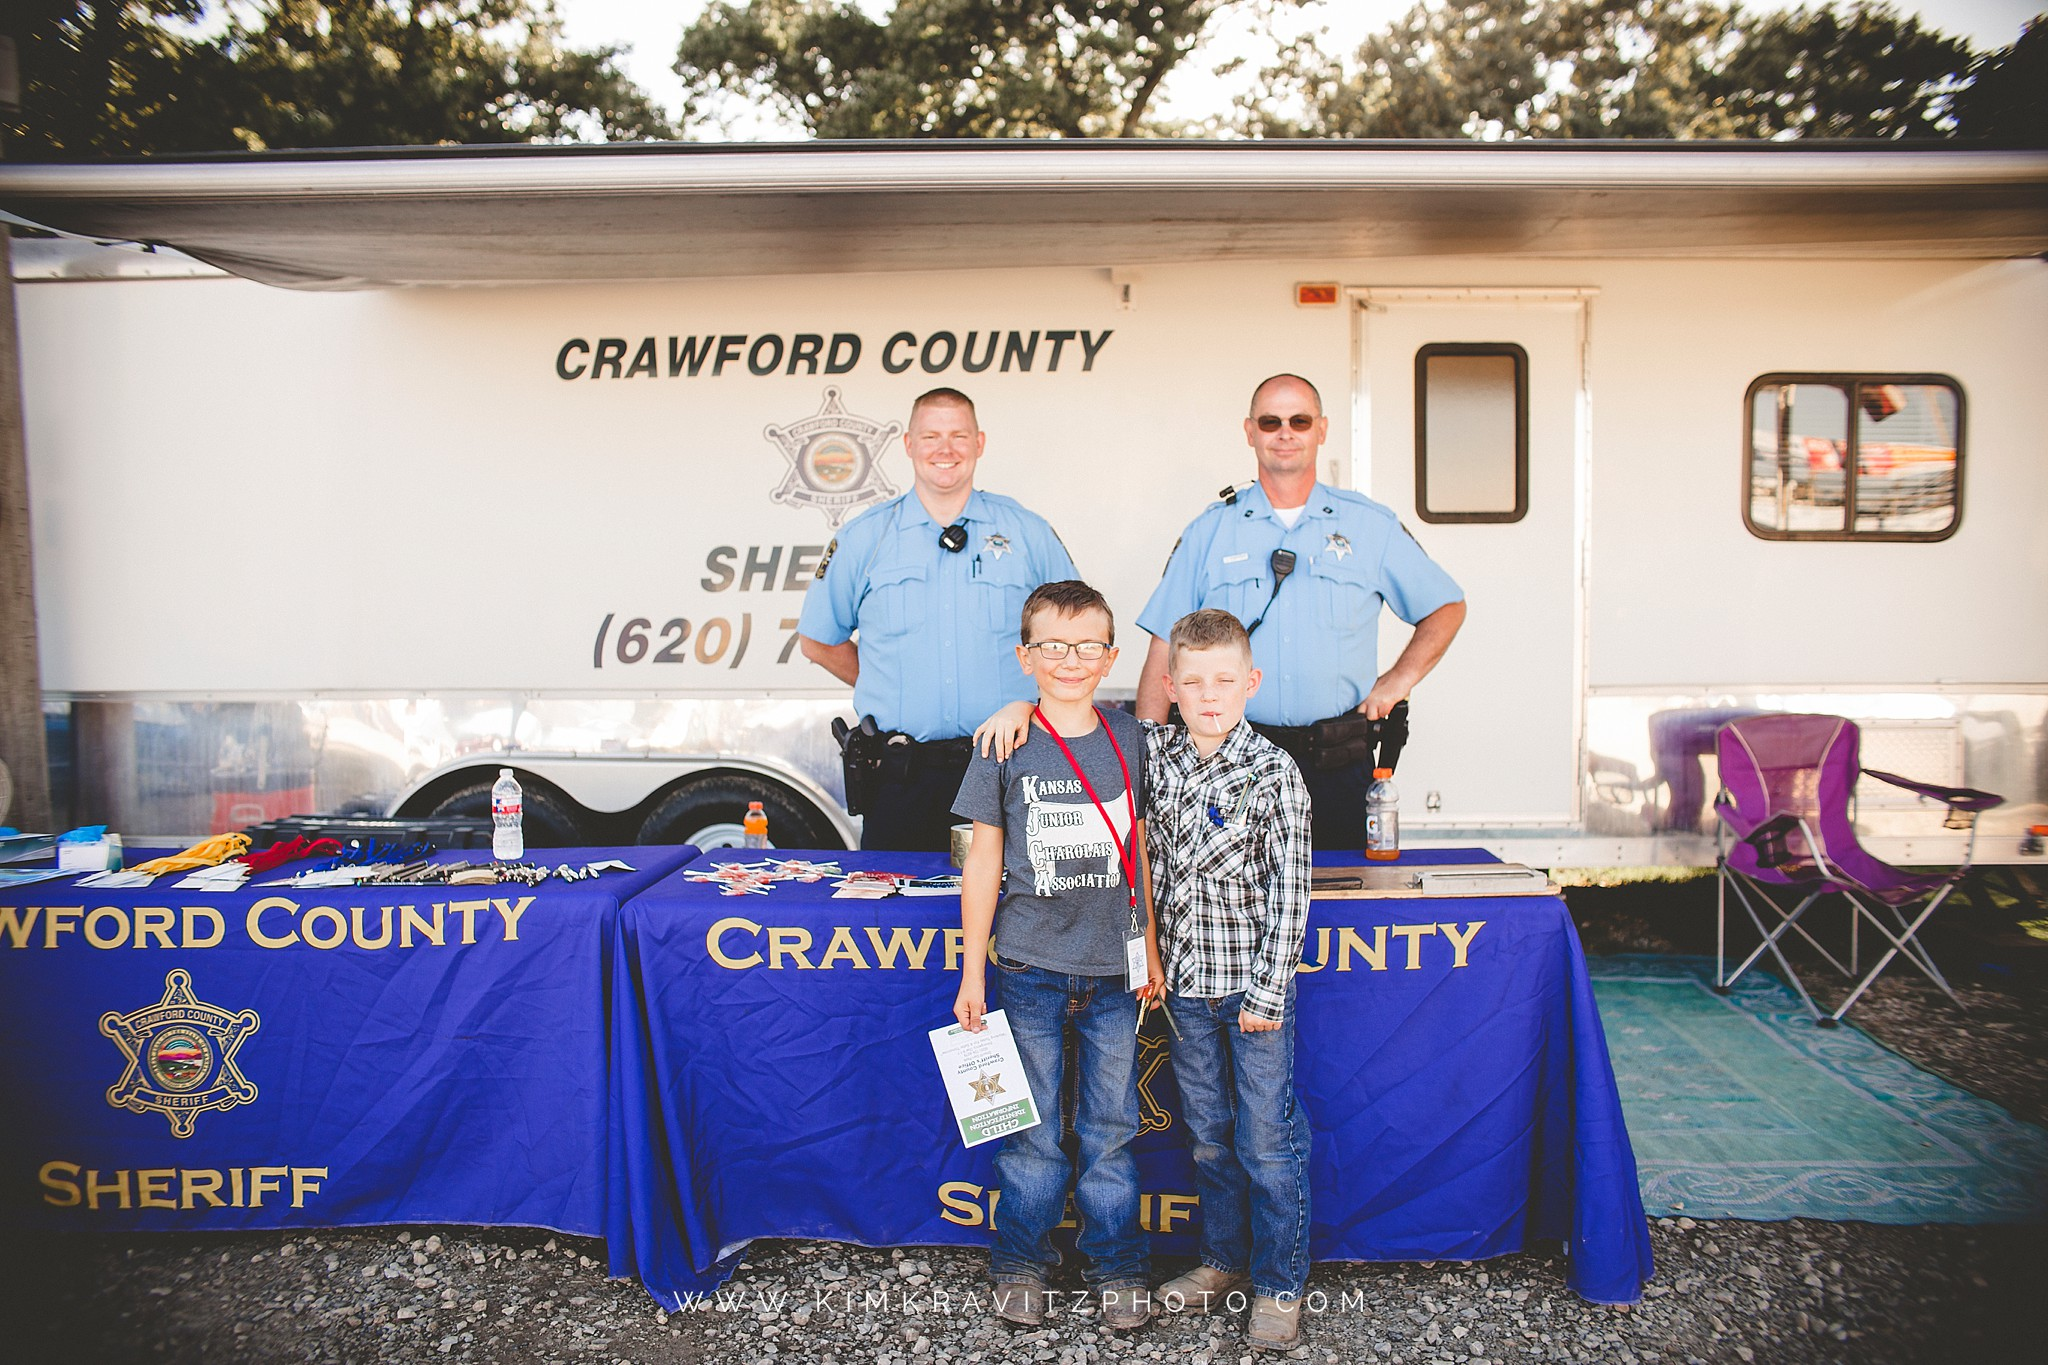 crawford county kansas sheriff's department community policing